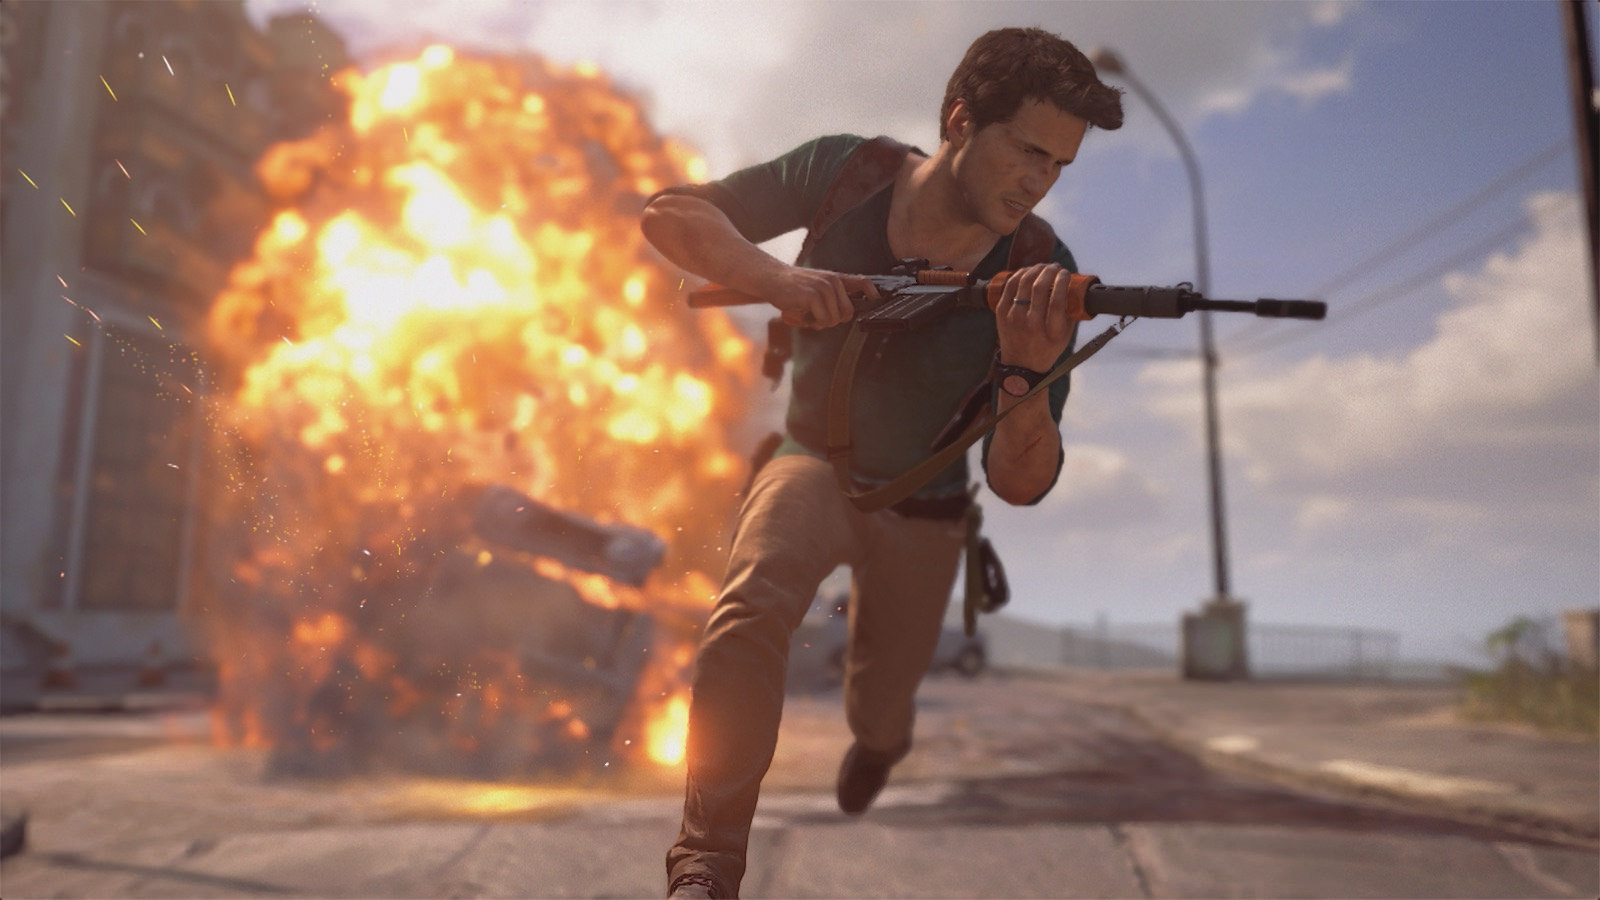 Naughty Dog Share Uncharted 4 DLC, Launch Modes, And More uncharted 4 multiplayer 7